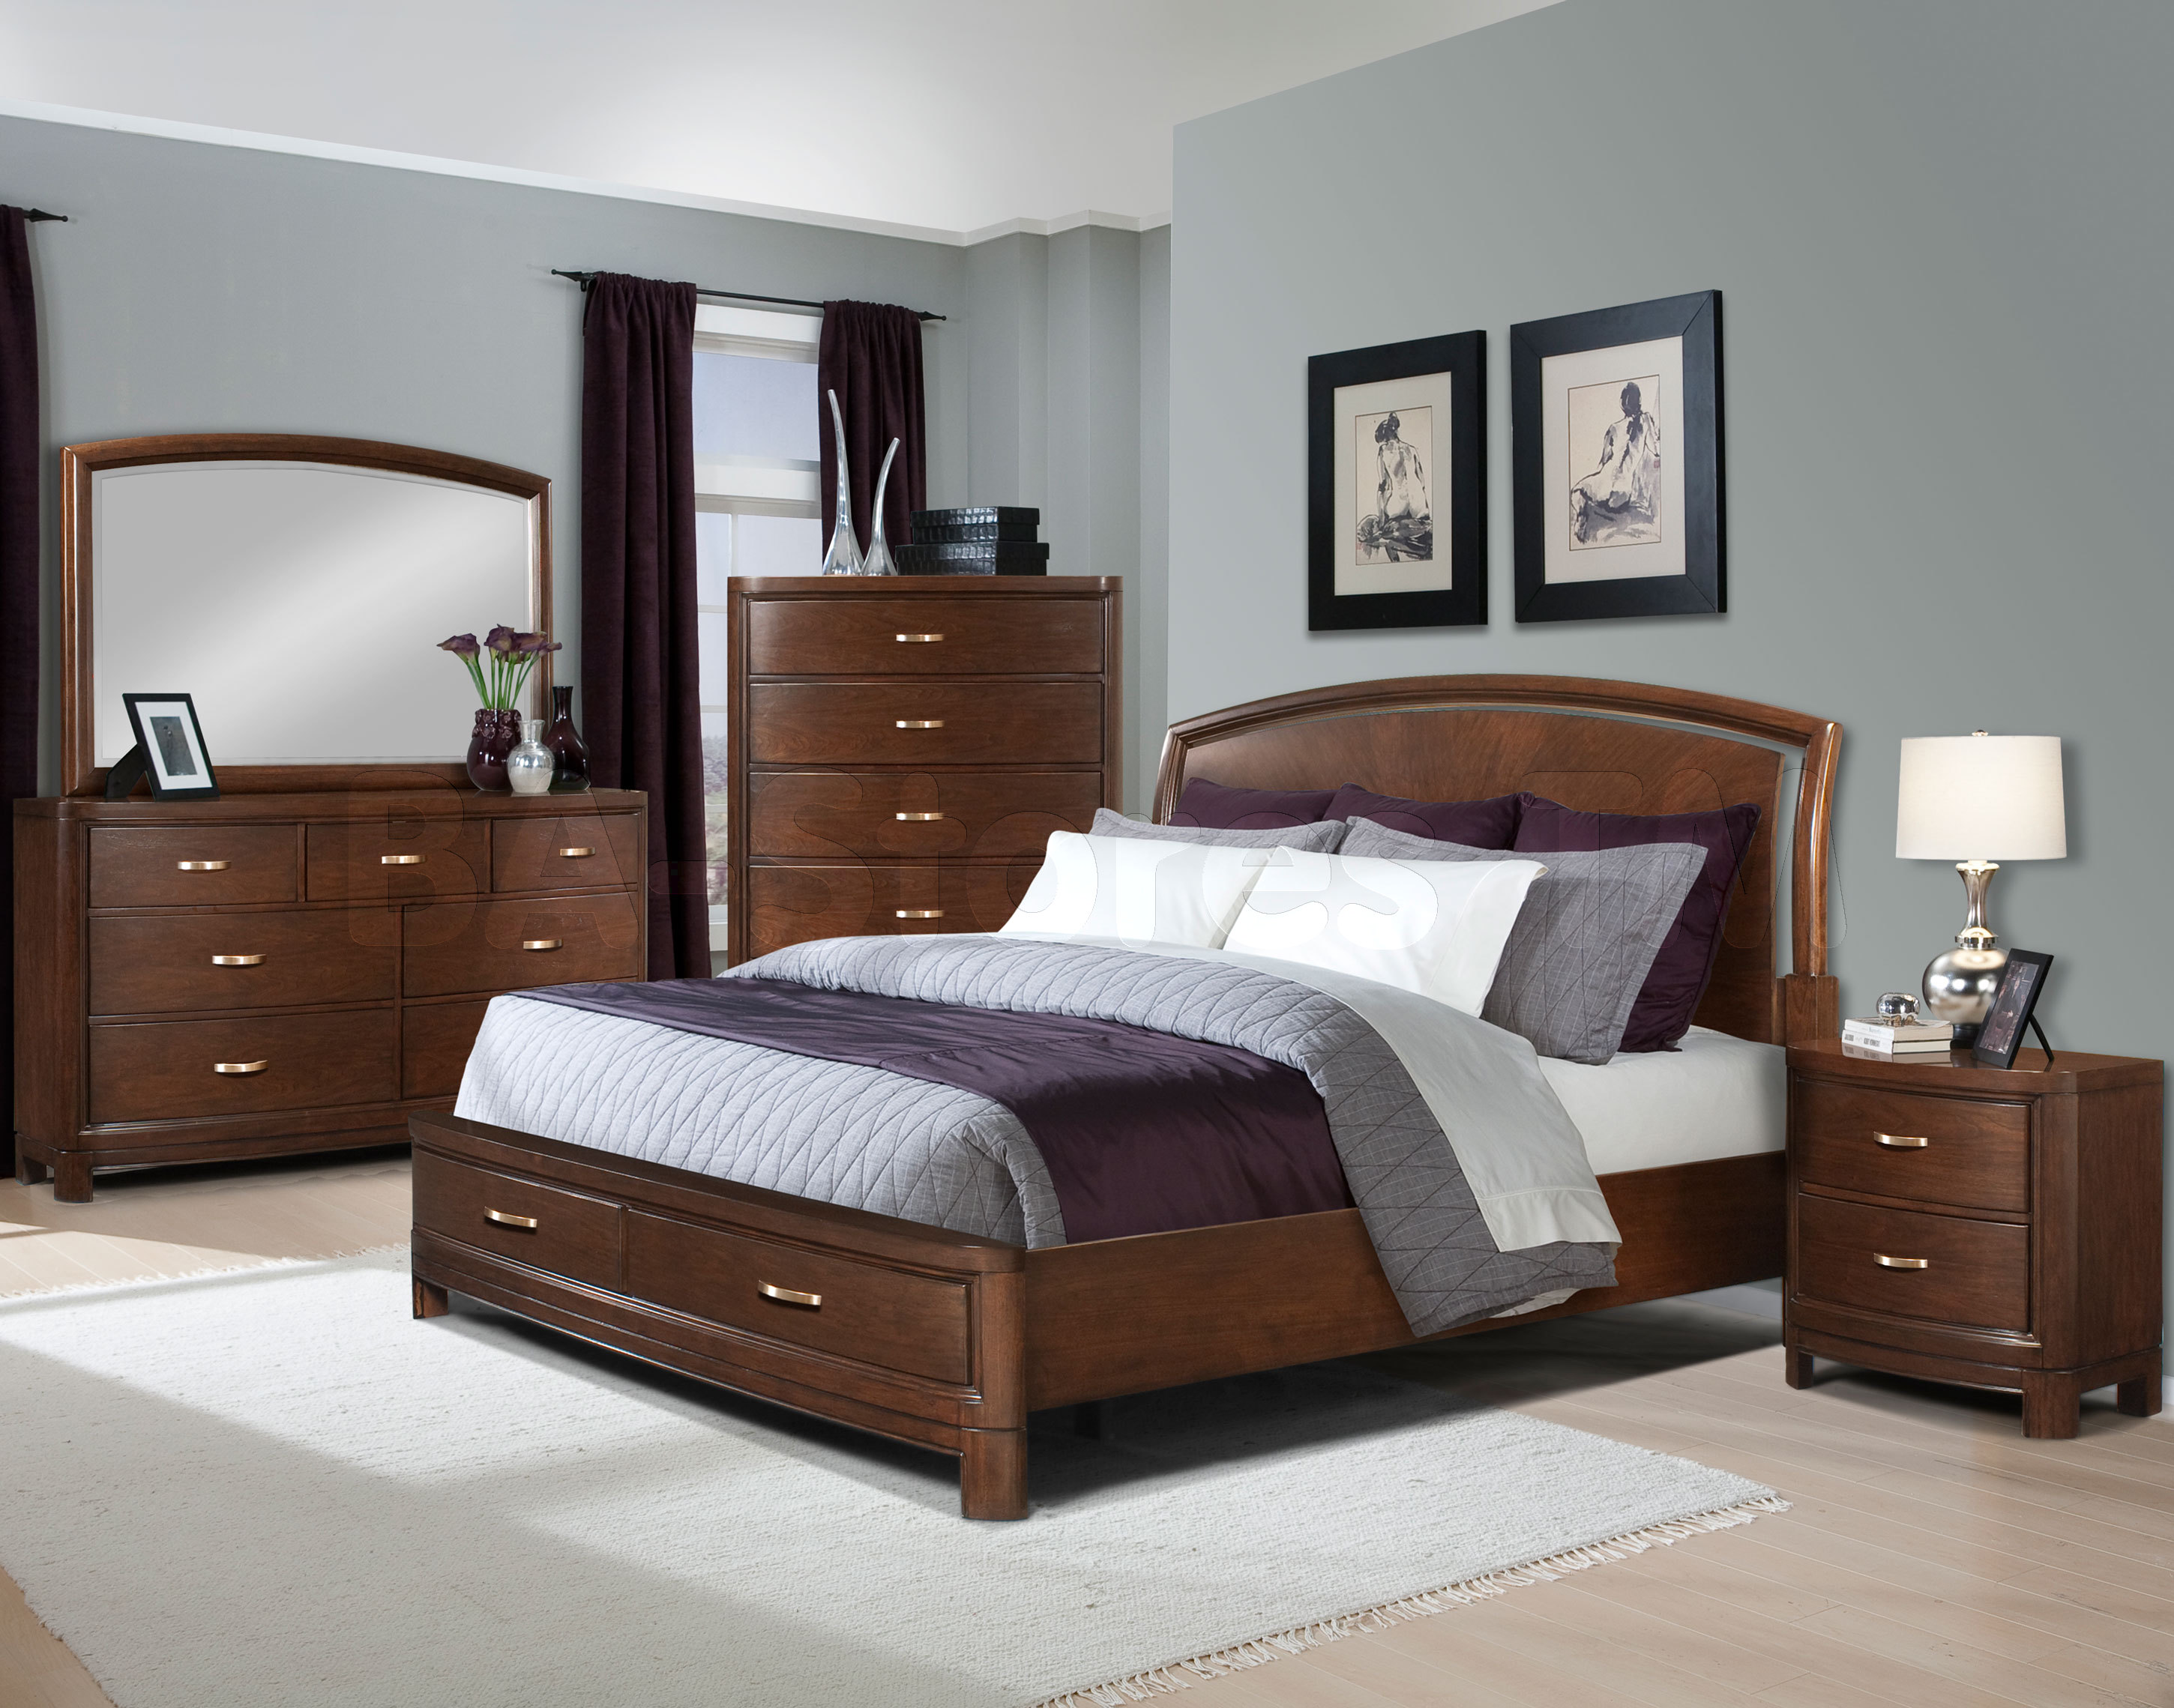 bedroom designs with brown furniture photo - 1